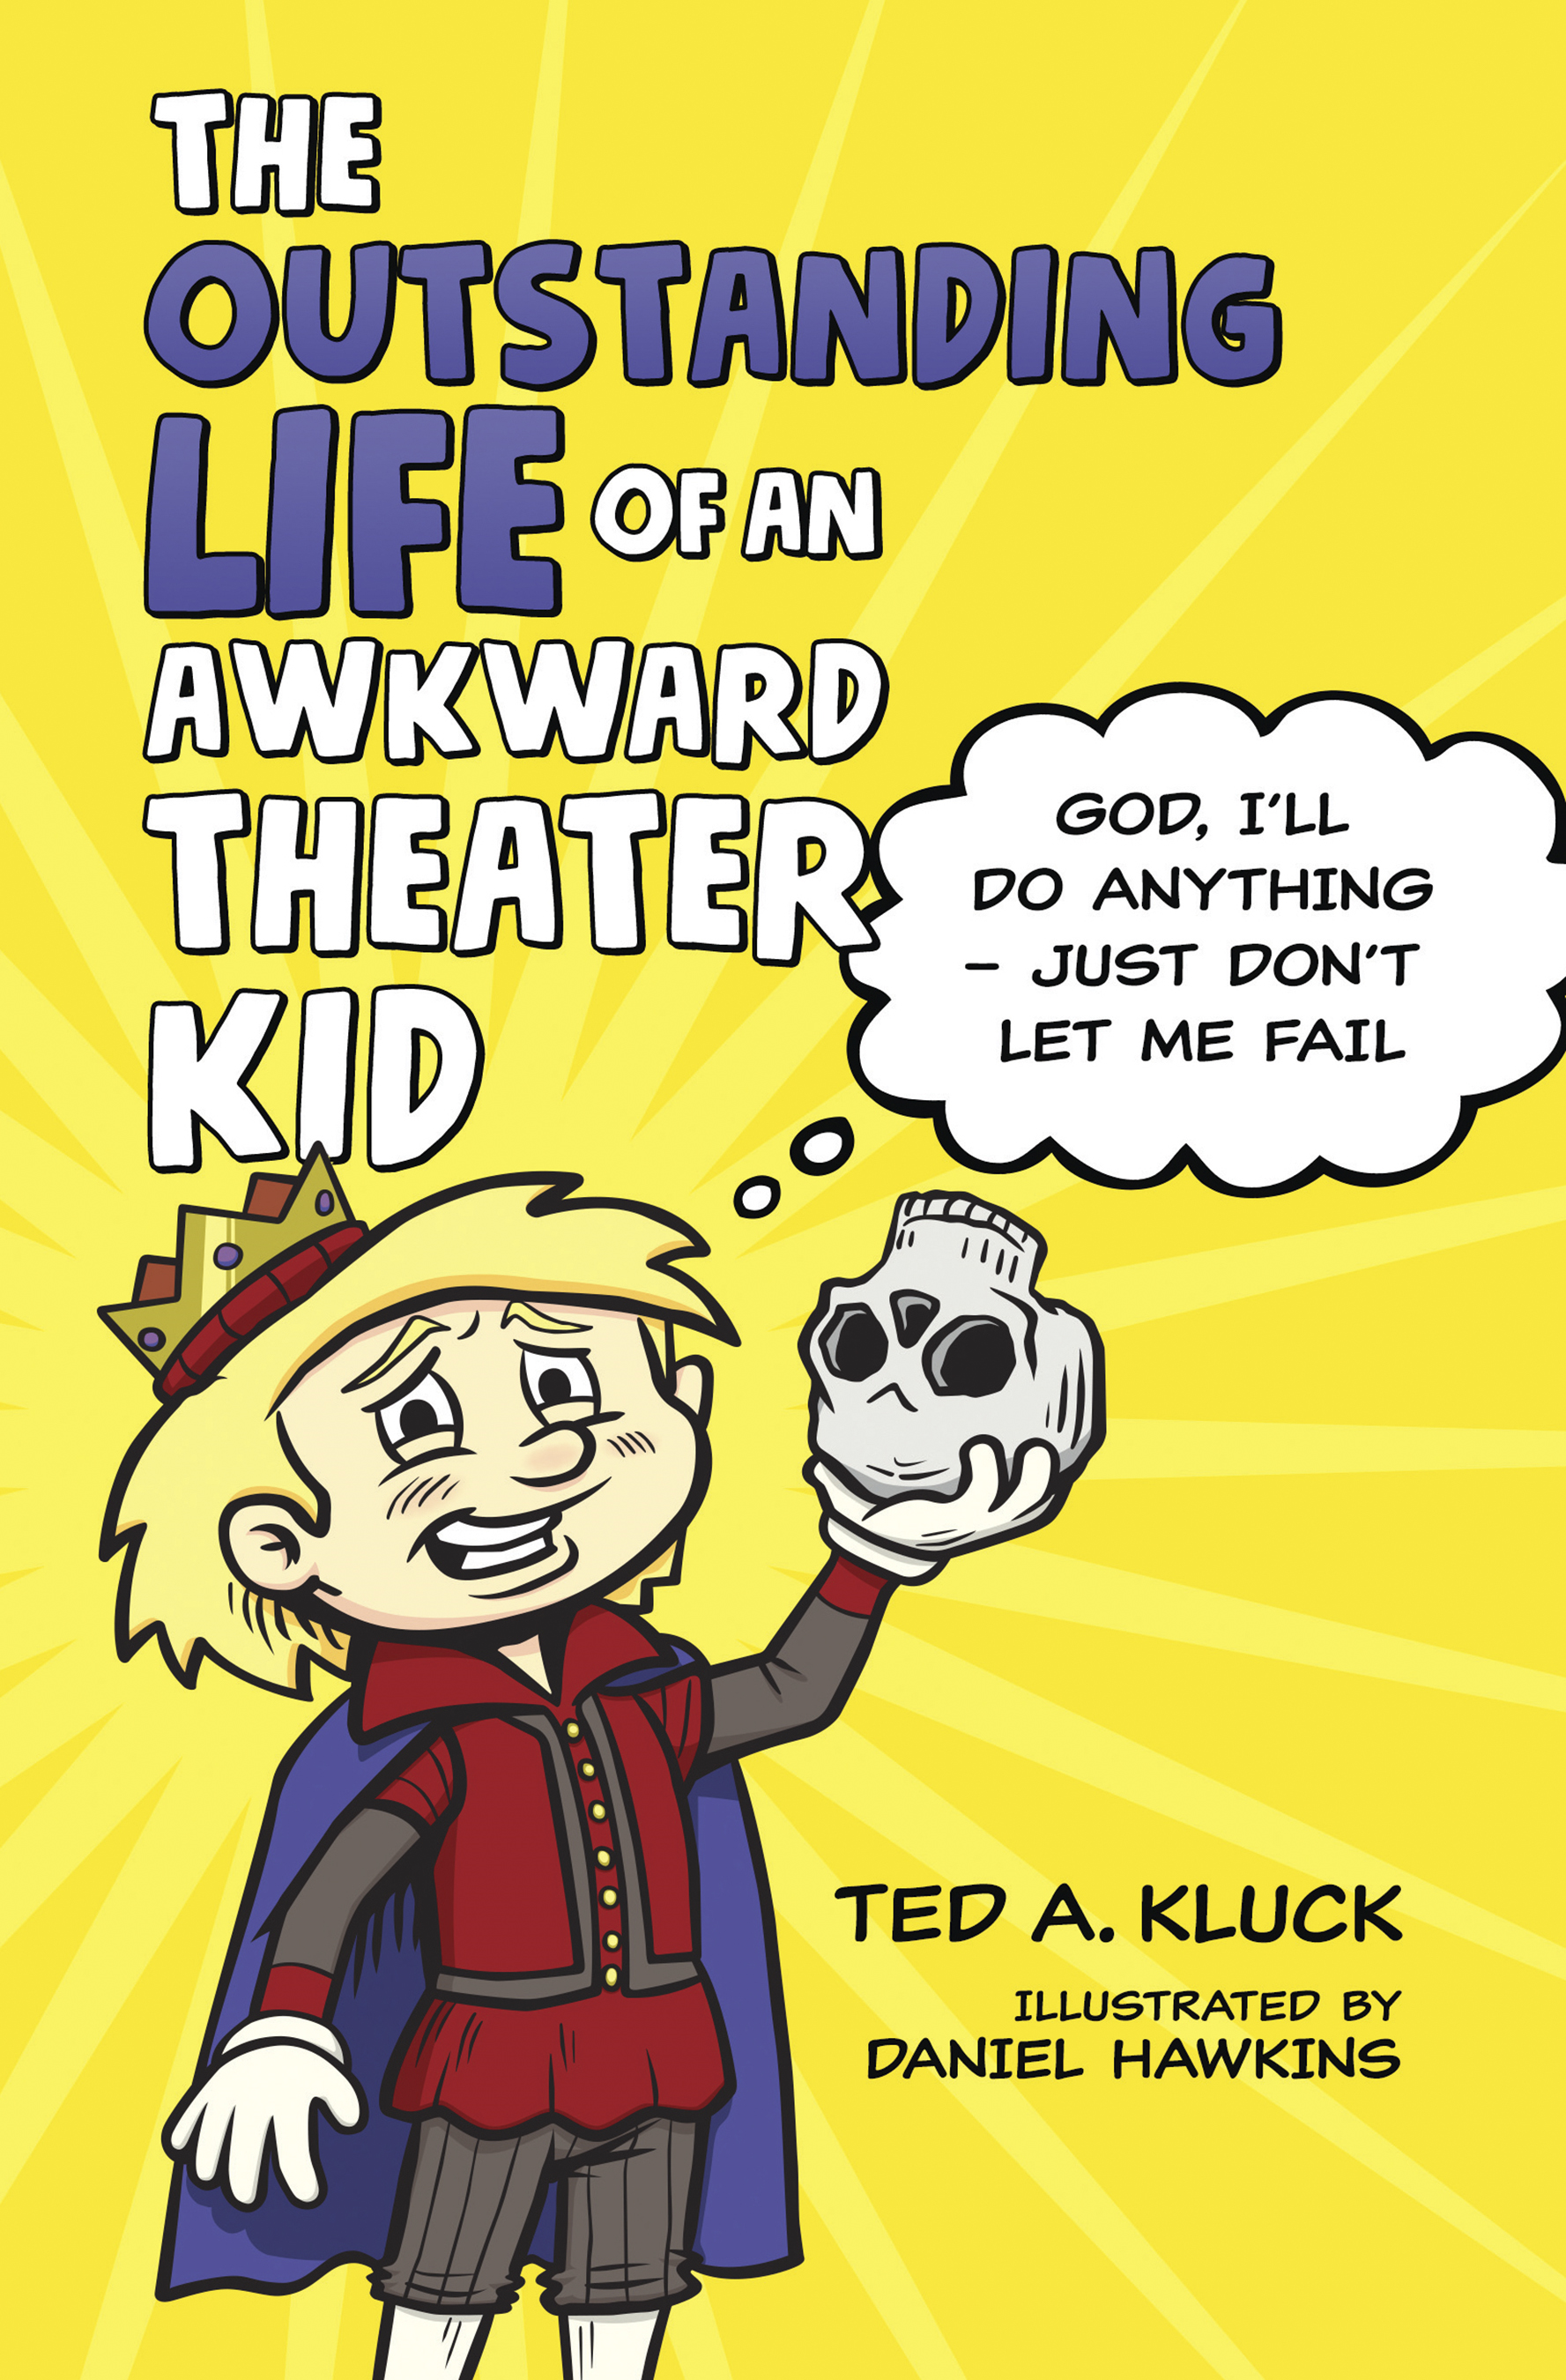 The Outstanding Life of an Awkward Theater Kid